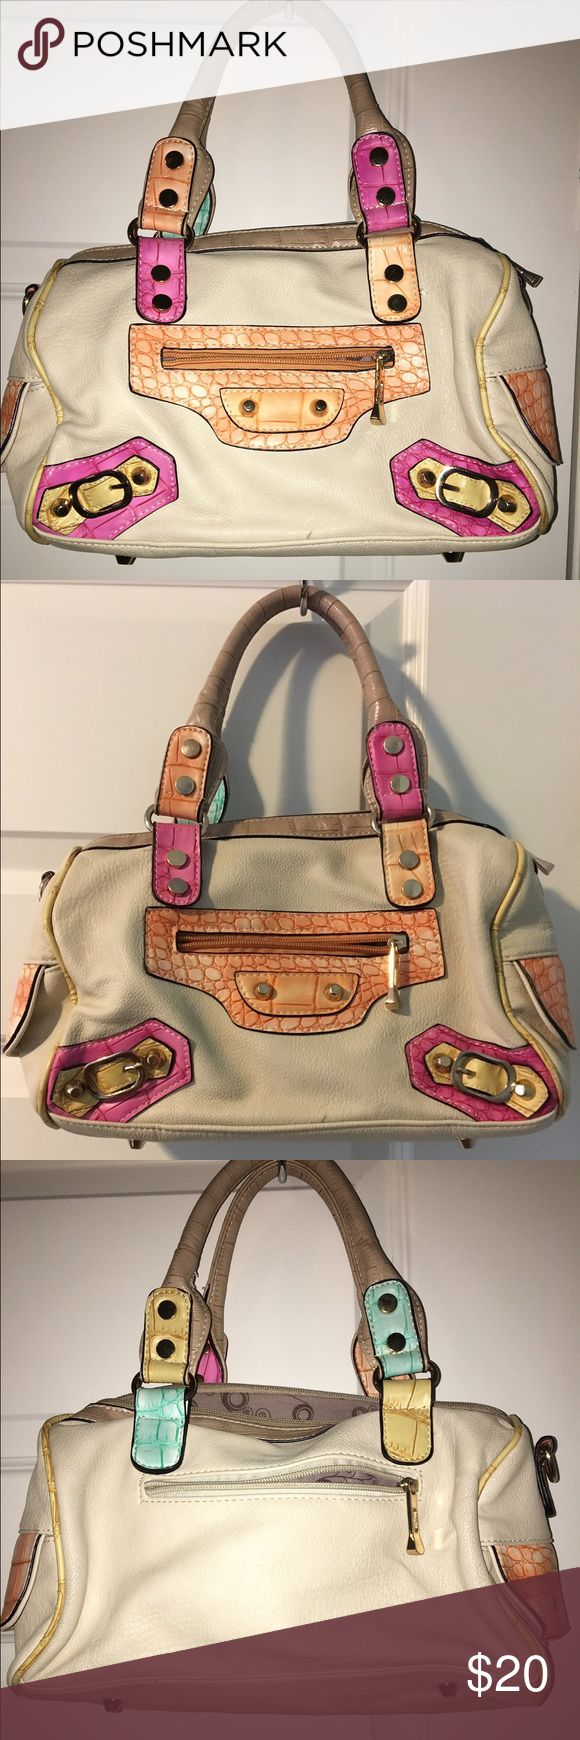 🌺Style: faux leather tote, Color: Multicolor Multi color, leather handbag tote, great statement making bag, very eye catching, medium sized Bags Totes